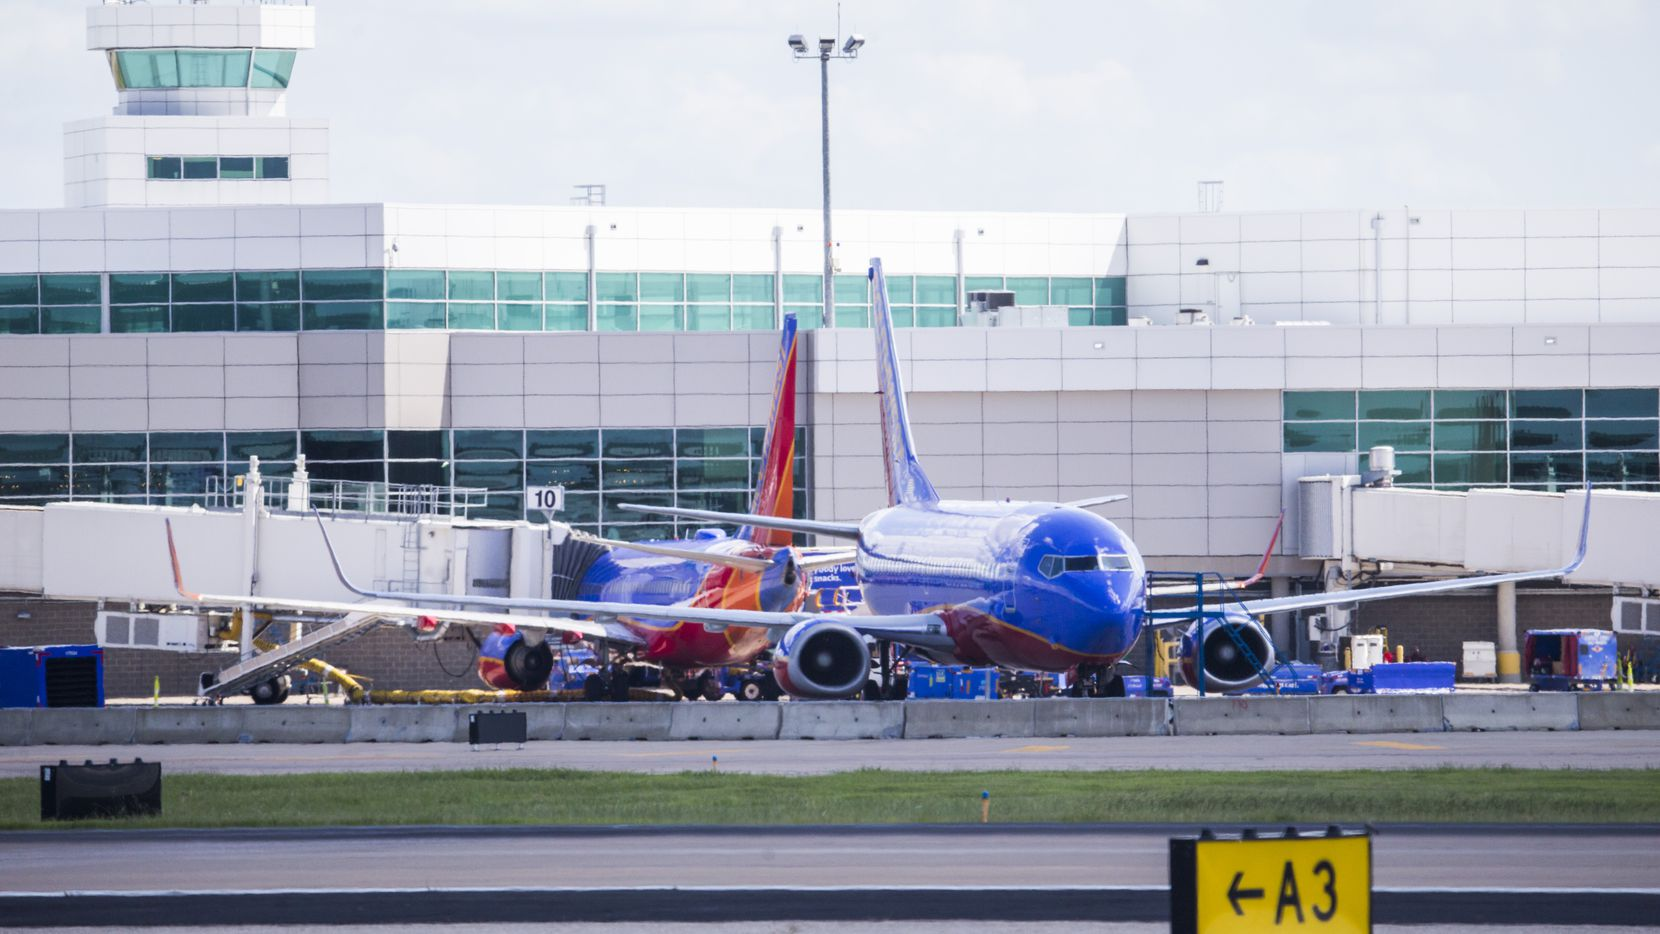 A federal watchdog is faulting safety regulators for letting Southwest Airlines continue to carry passengers on planes with unconfirmed maintenance histories